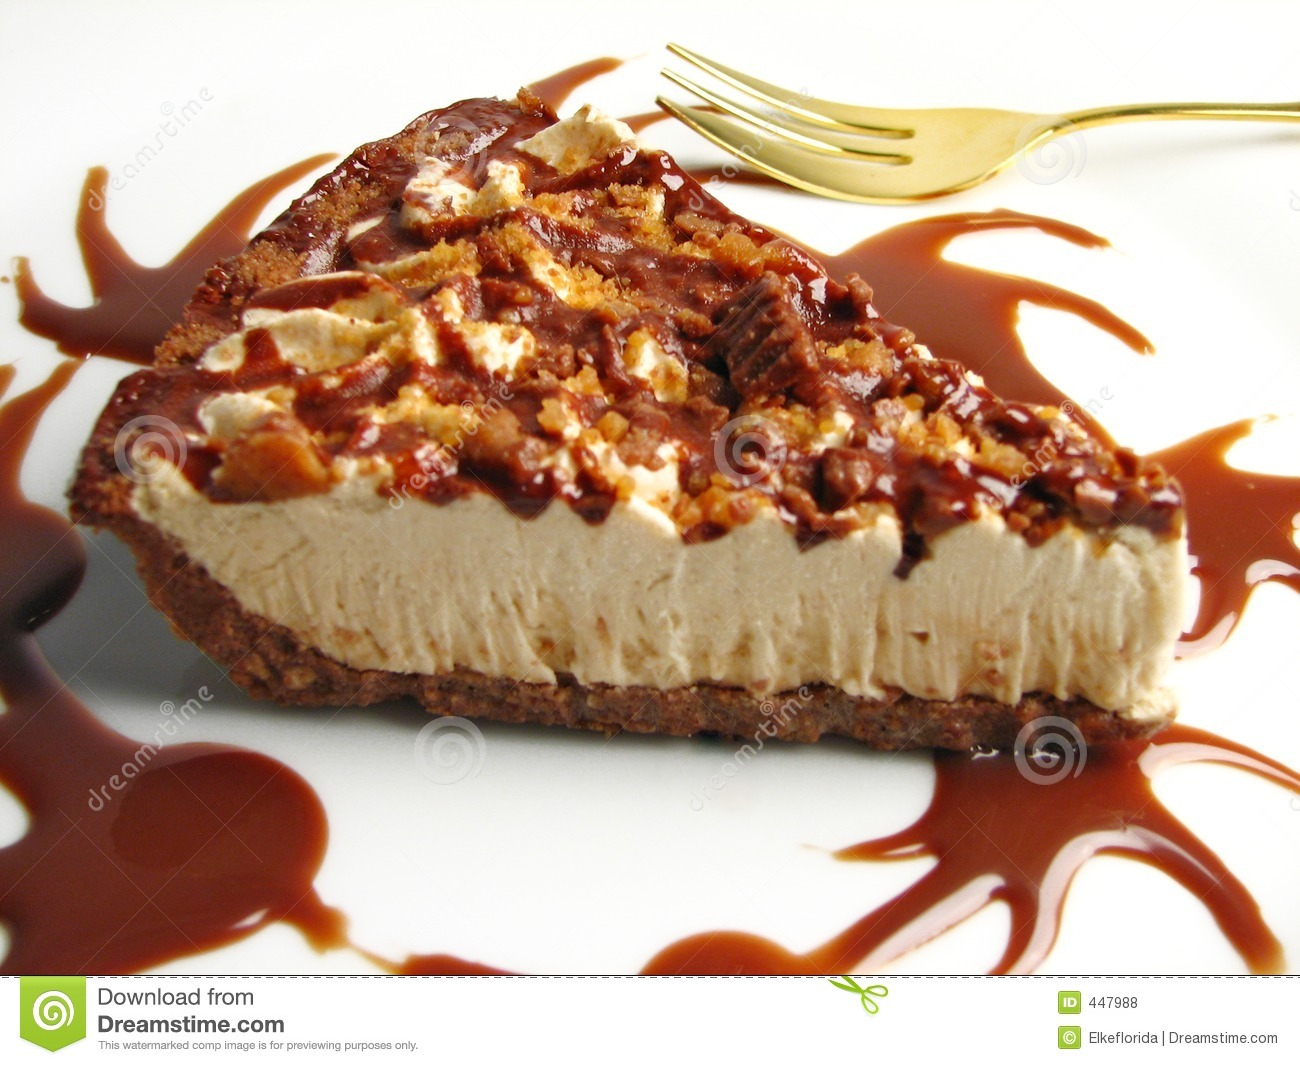 Pecan Pie Royalty Free Stock Photos   Image  447988